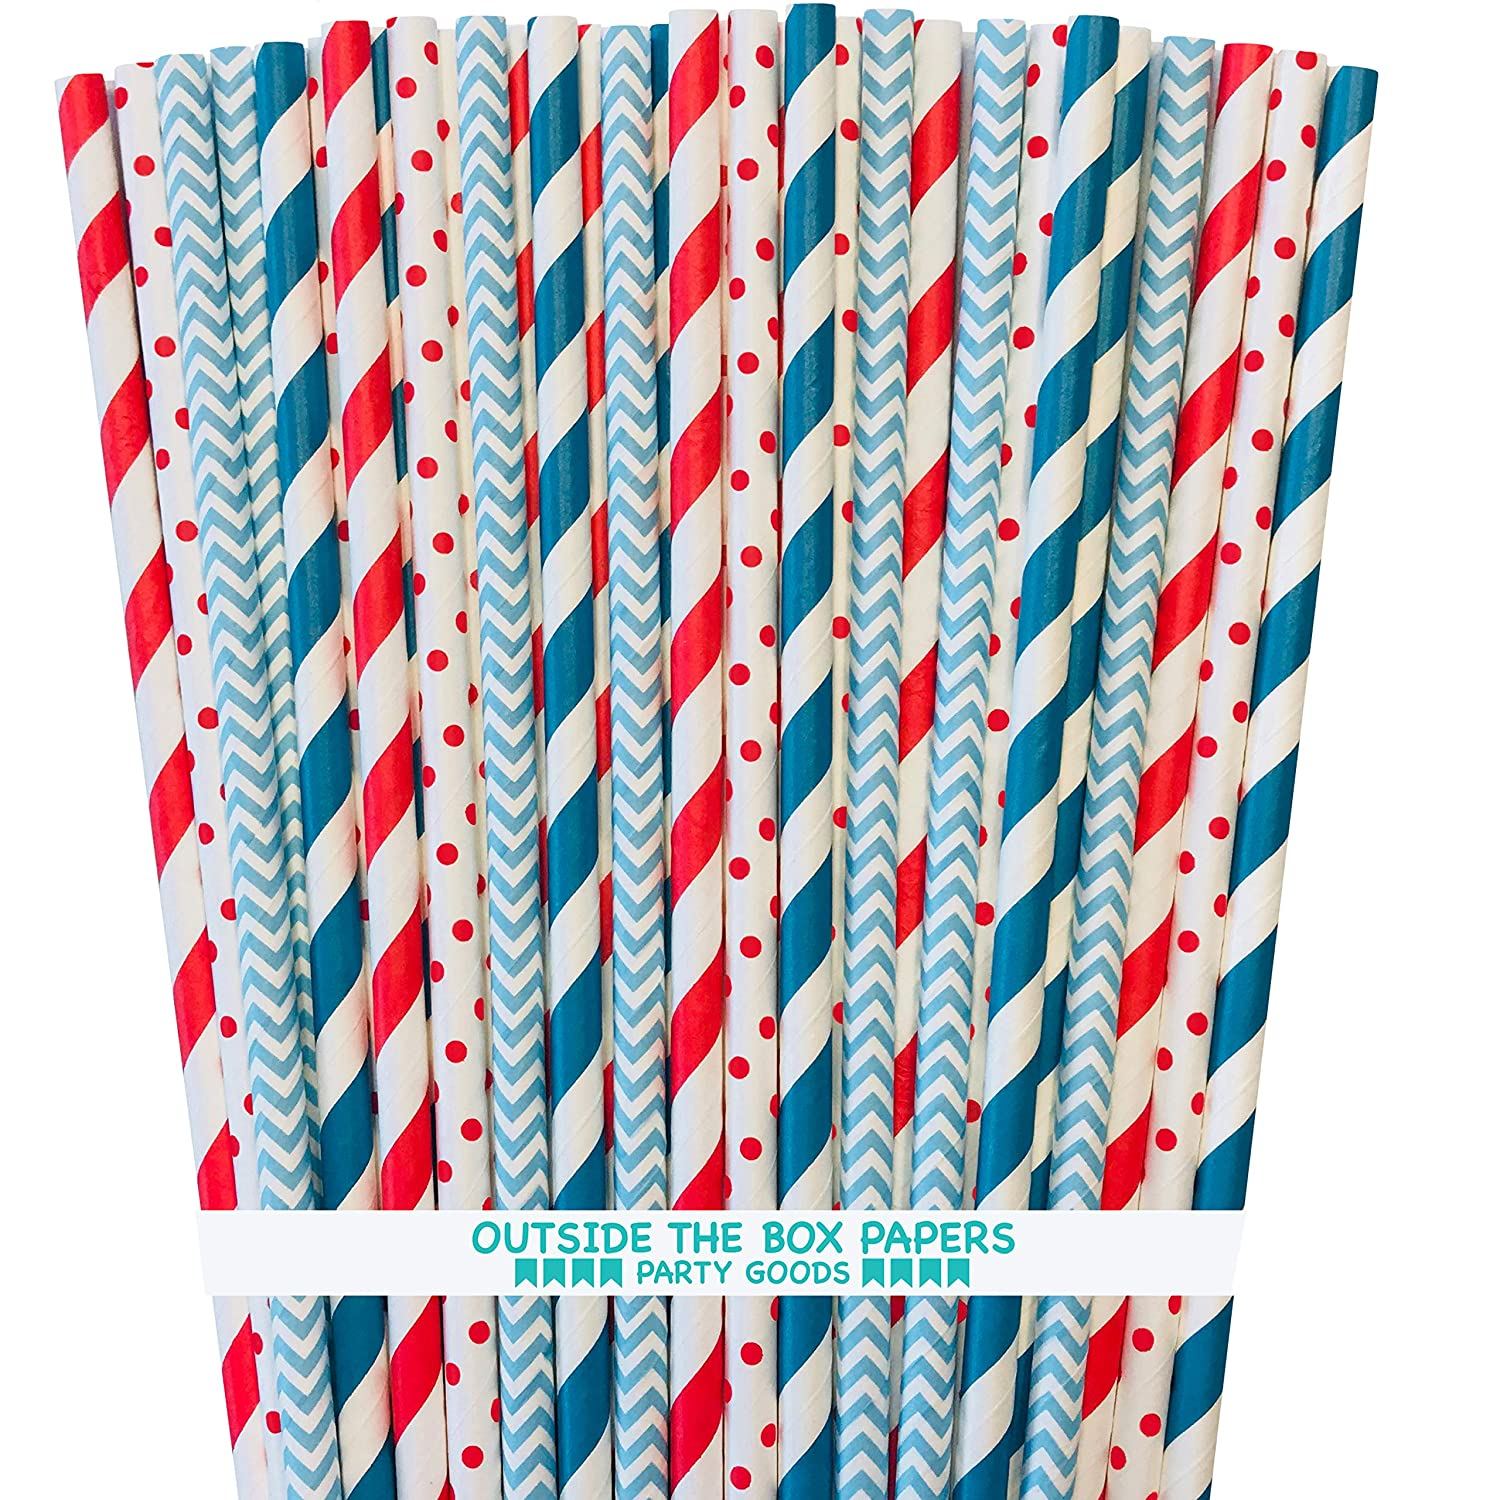 Dr. Seuss Themed Paper Straws - Polka Dot Chevron Stripe - Teal Blue Red White - 7.75 Inches - 100 Pack